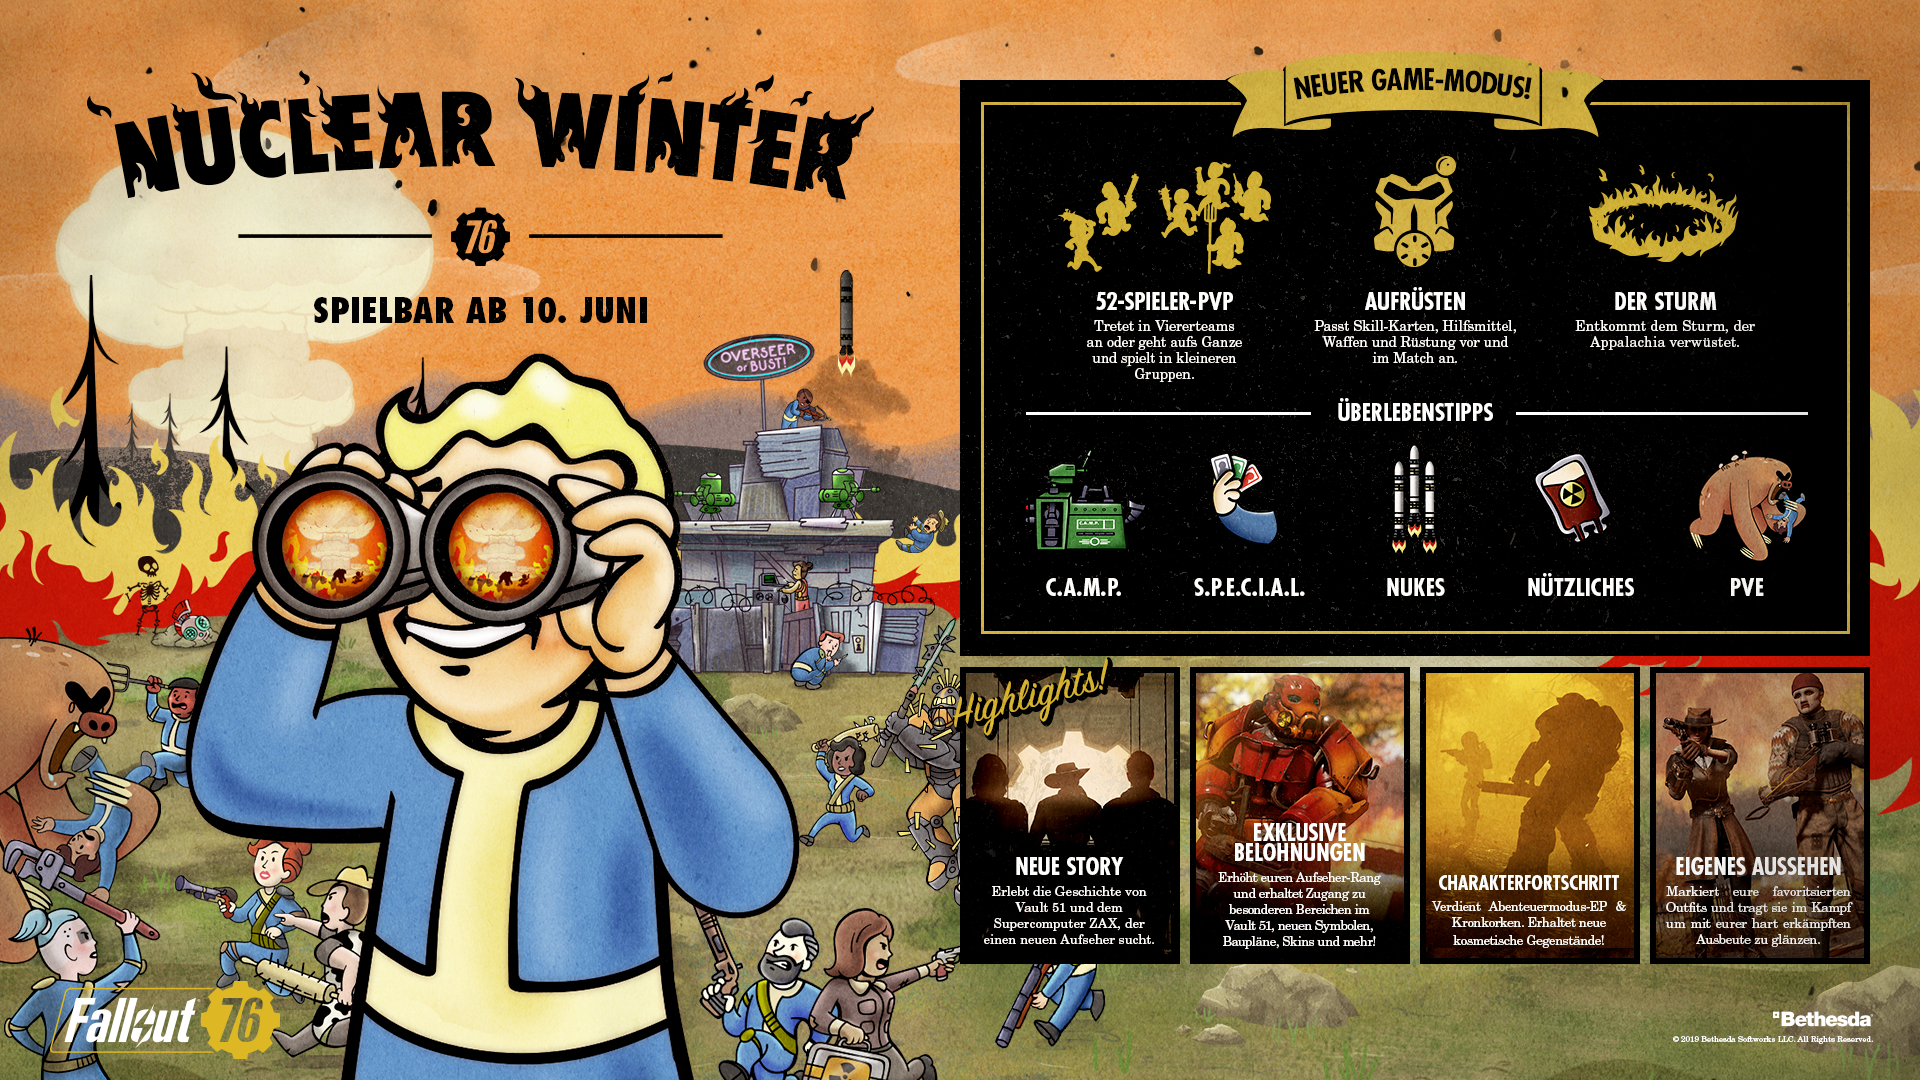 Fallout 76 Karte Deutsch.Fallout 76 Fallout 76 Nuclear Winter Is Here